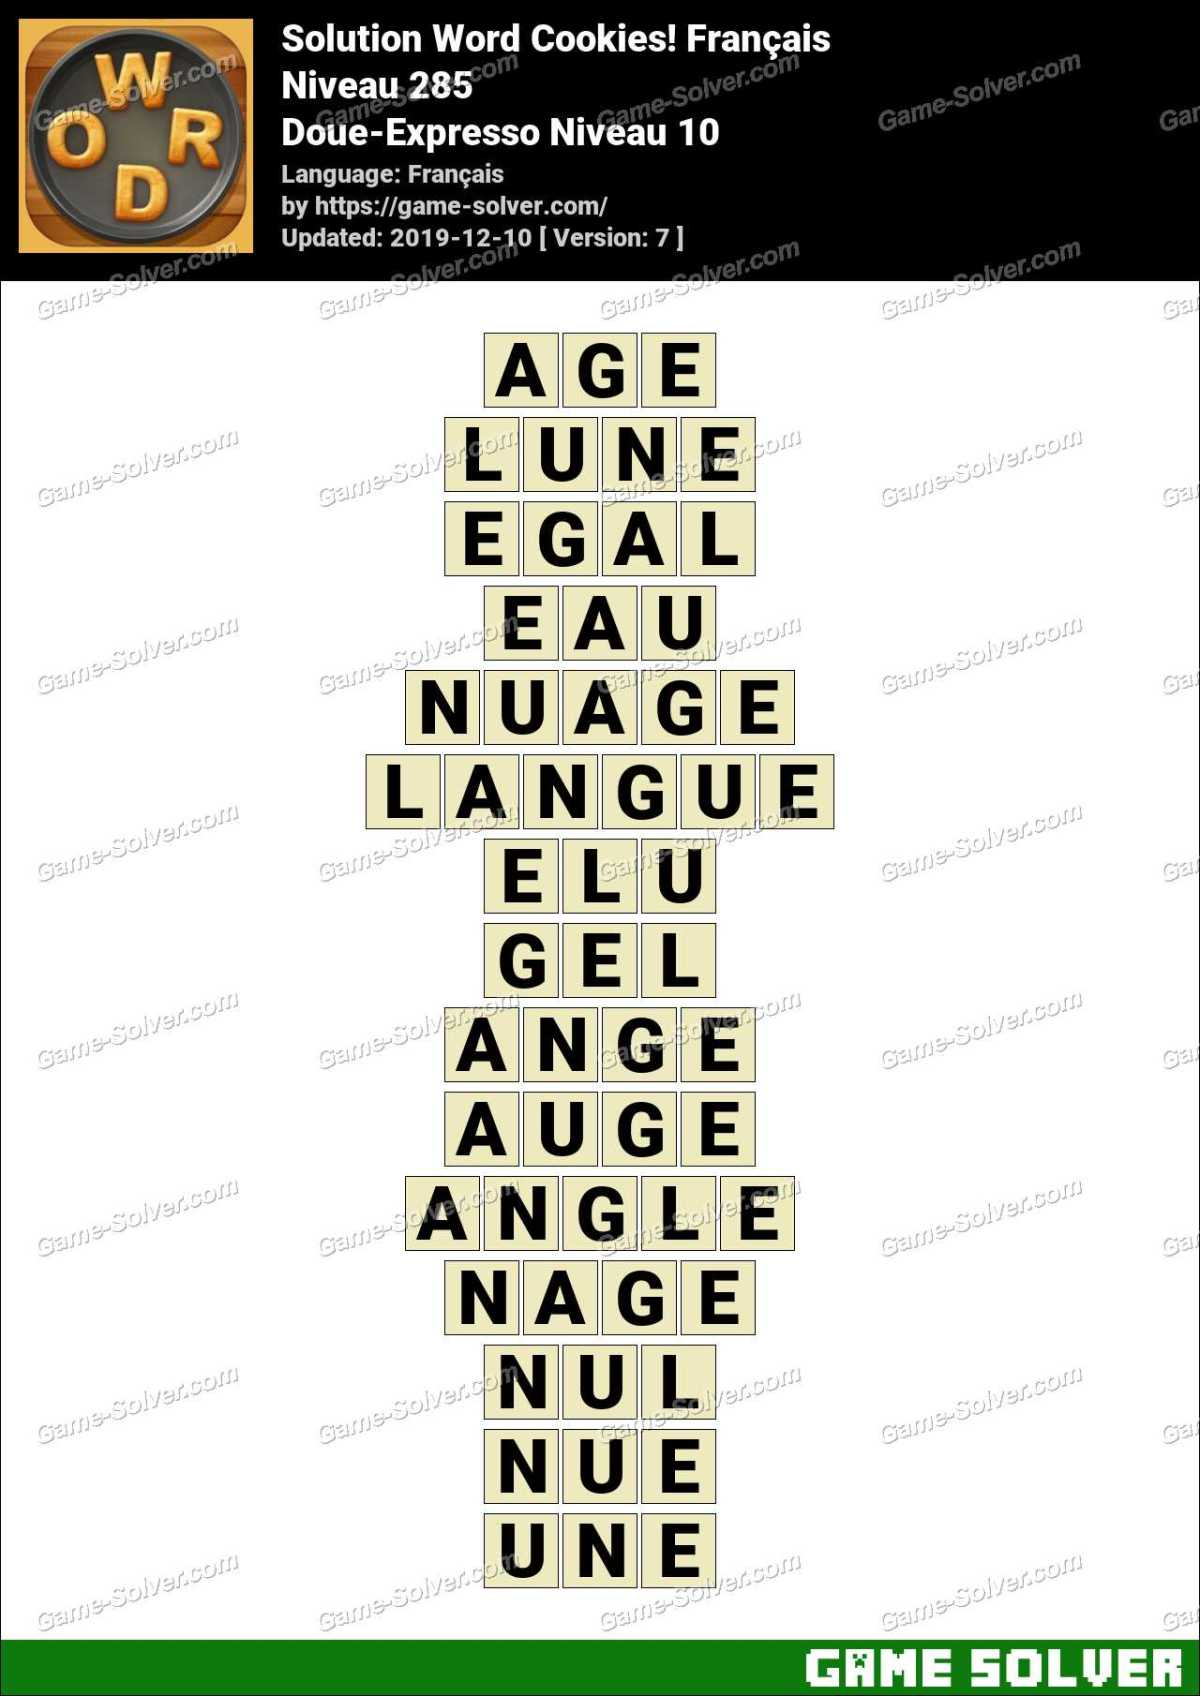 Solution Word Cookies Doue-Expresso Niveau 10